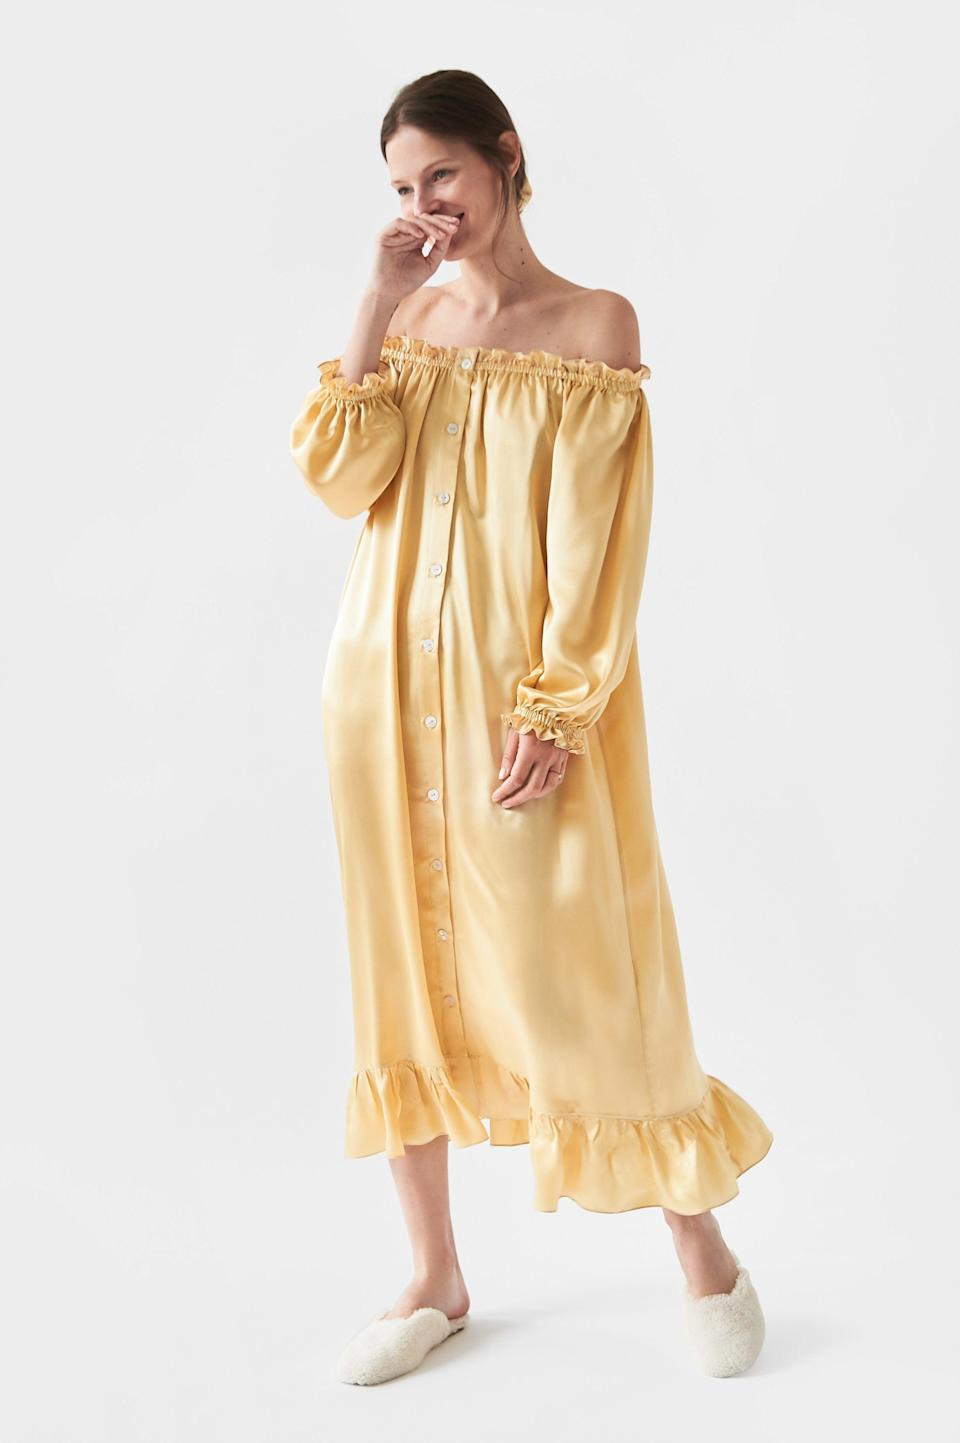 "<p><strong>Sleepr</strong></p><p>www.sleeper.com</p><p><strong>$294.00</strong></p><p><a href=""https://the-sleeper.com/en/product/champagne-silk-loungewear-dress/"" rel=""nofollow noopener"" target=""_blank"" data-ylk=""slk:shop it"" class=""link rapid-noclick-resp"">shop it</a></p><p>Get your hands on this silk loungewear dress by Sleeper—yet another brand whose transitional nightgowns have taken over our instagram feeds. The puff sleeves can be worn on or off the shoulder, and for a flirty weekend look you can cinch your waist with a <a href=""https://www.shopbop.com/farah-belt-b-low/vp/v=1/1582218755.htm?fm=search-viewall-shopbysize&os=false&searchClick=true&searchResultClicked=Farah+Belt&ref_=SB_PLP_NB_5&breadcrumb=Internal%20Search"" rel=""nofollow noopener"" target=""_blank"" data-ylk=""slk:rhinestone belt"" class=""link rapid-noclick-resp"">rhinestone belt</a>. Finish off the look by adding a <a href=""https://www.shopbop.com/athena-sandals-manu-atelier/vp/v=1/1589955833.htm?fm=search-viewall-shopbysize&os=false&searchClick=true&searchResultClicked=Athena+Sandals&ref_=SB_PLP_NB_13&breadcrumb=Internal%20Search"" rel=""nofollow noopener"" target=""_blank"" data-ylk=""slk:low heel"" class=""link rapid-noclick-resp"">low heel</a>.<br></p>"